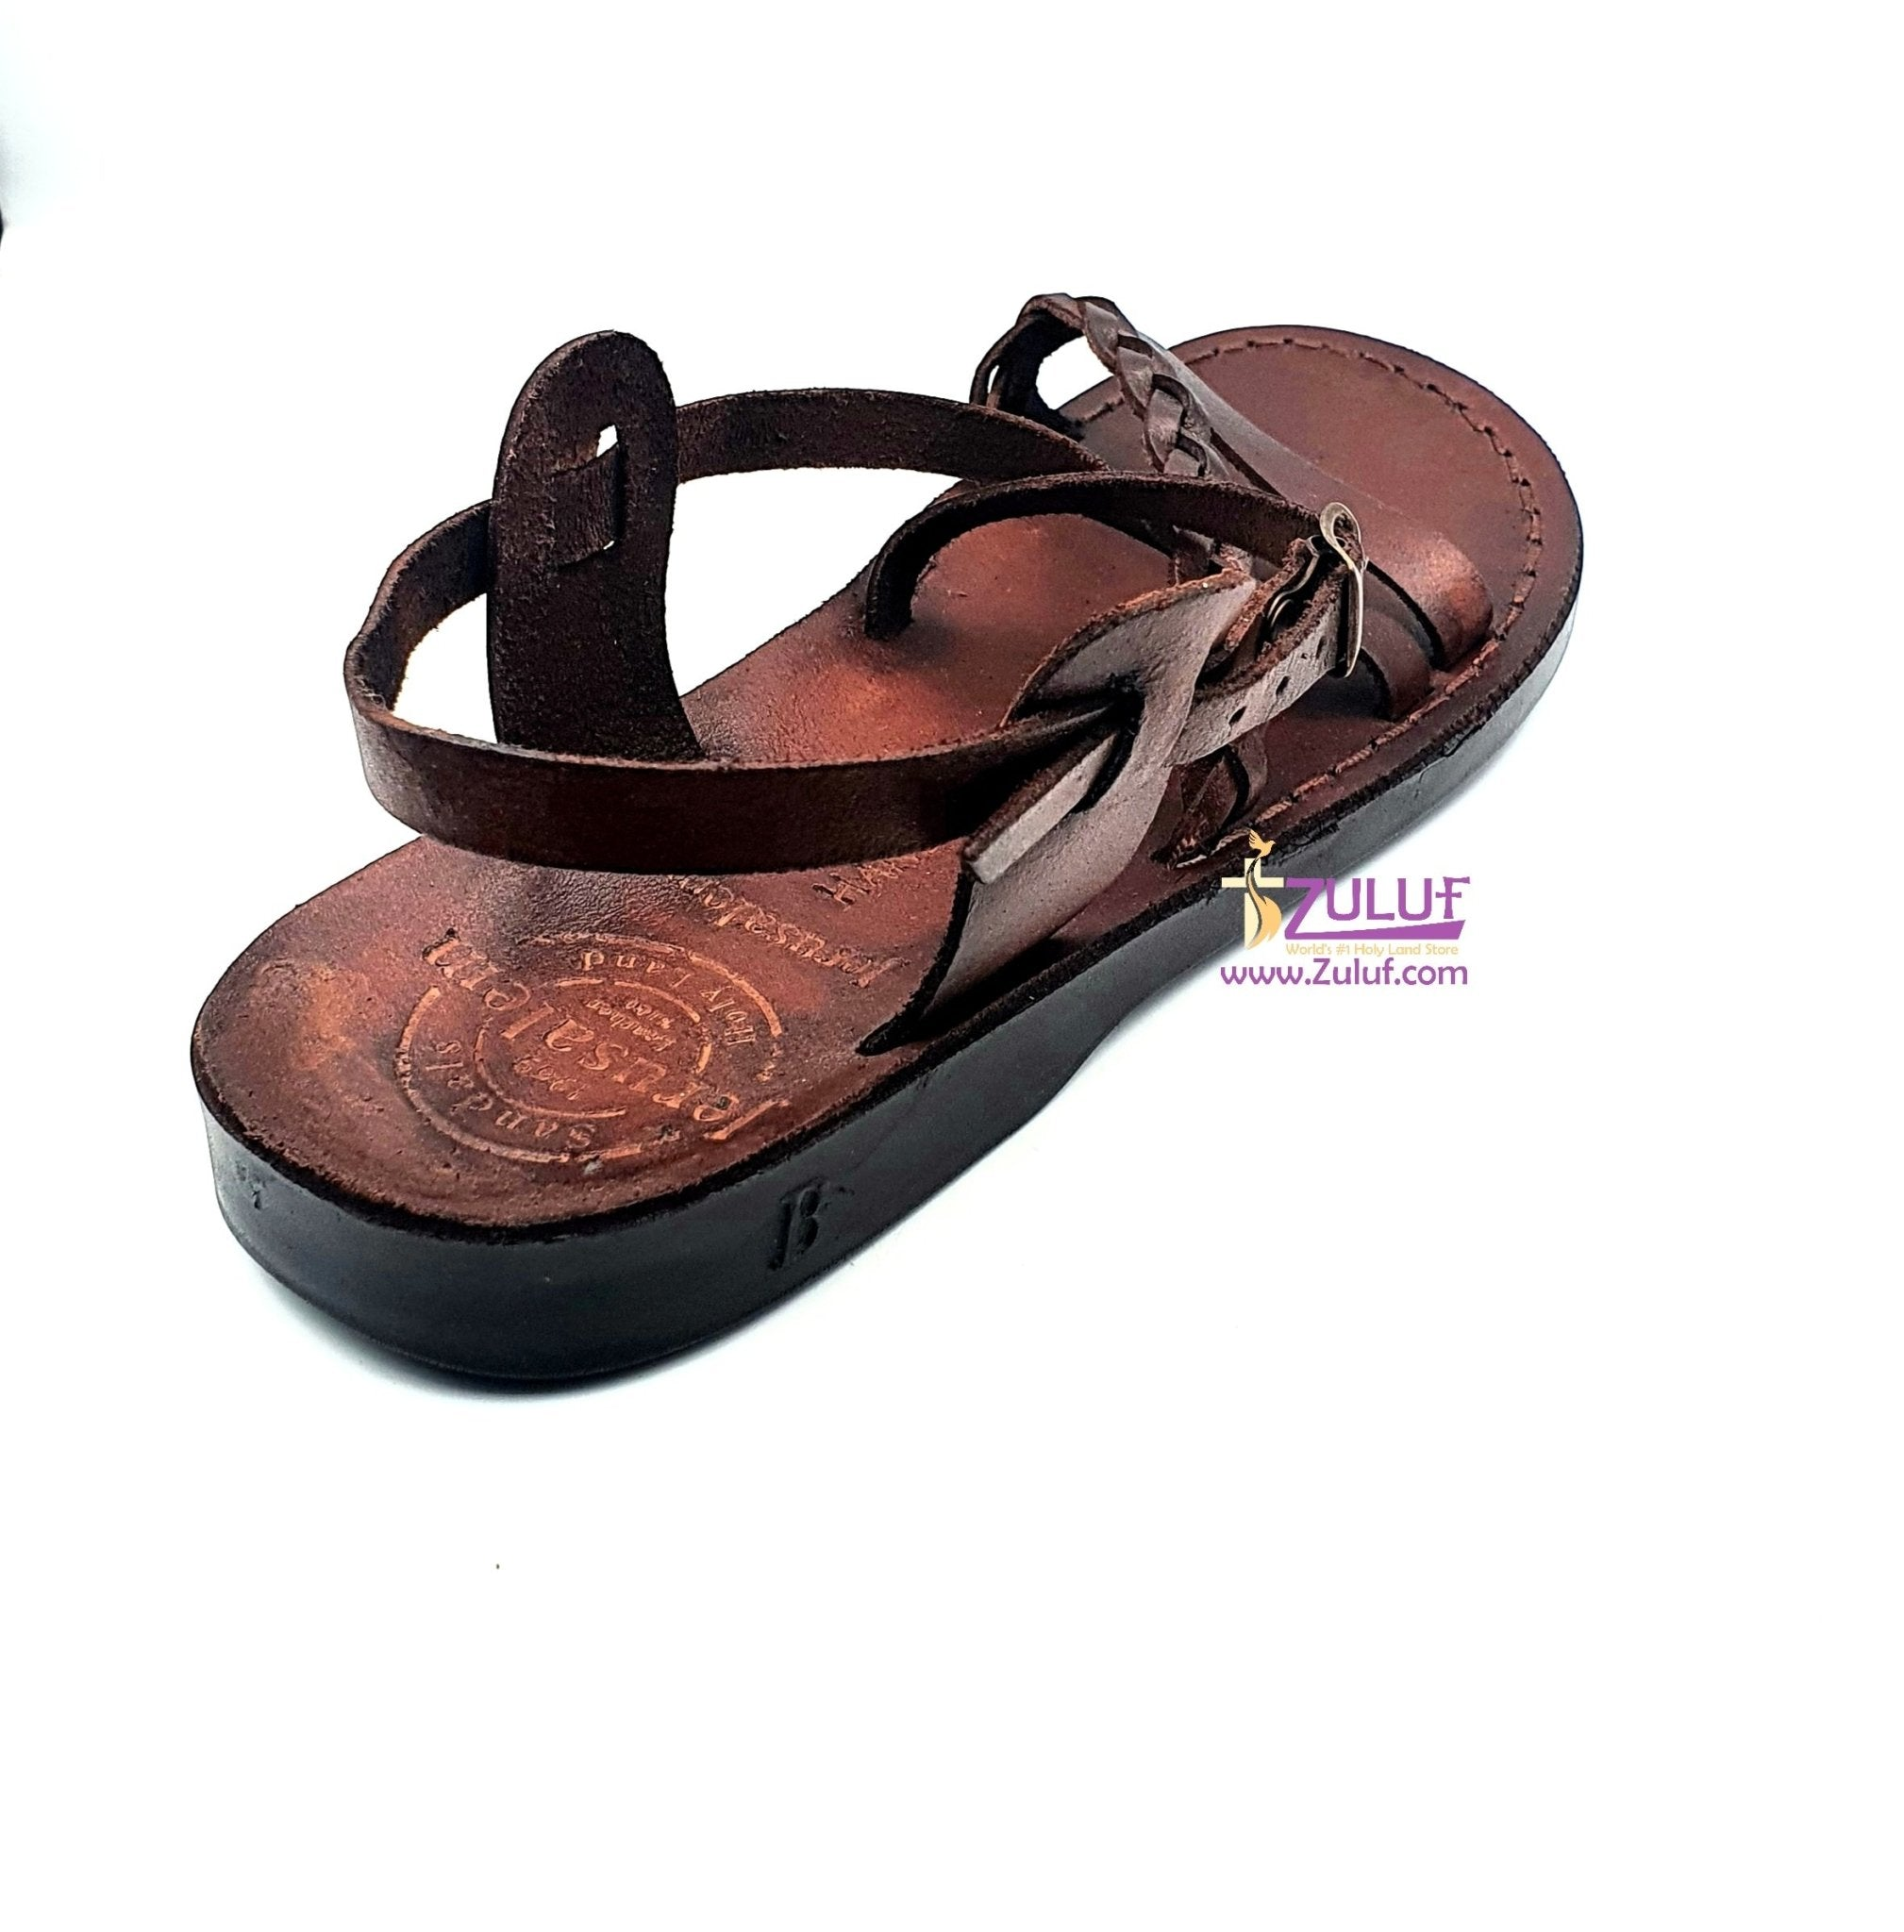 Jerusalem leather hand made sandal SAN011 - Zuluf